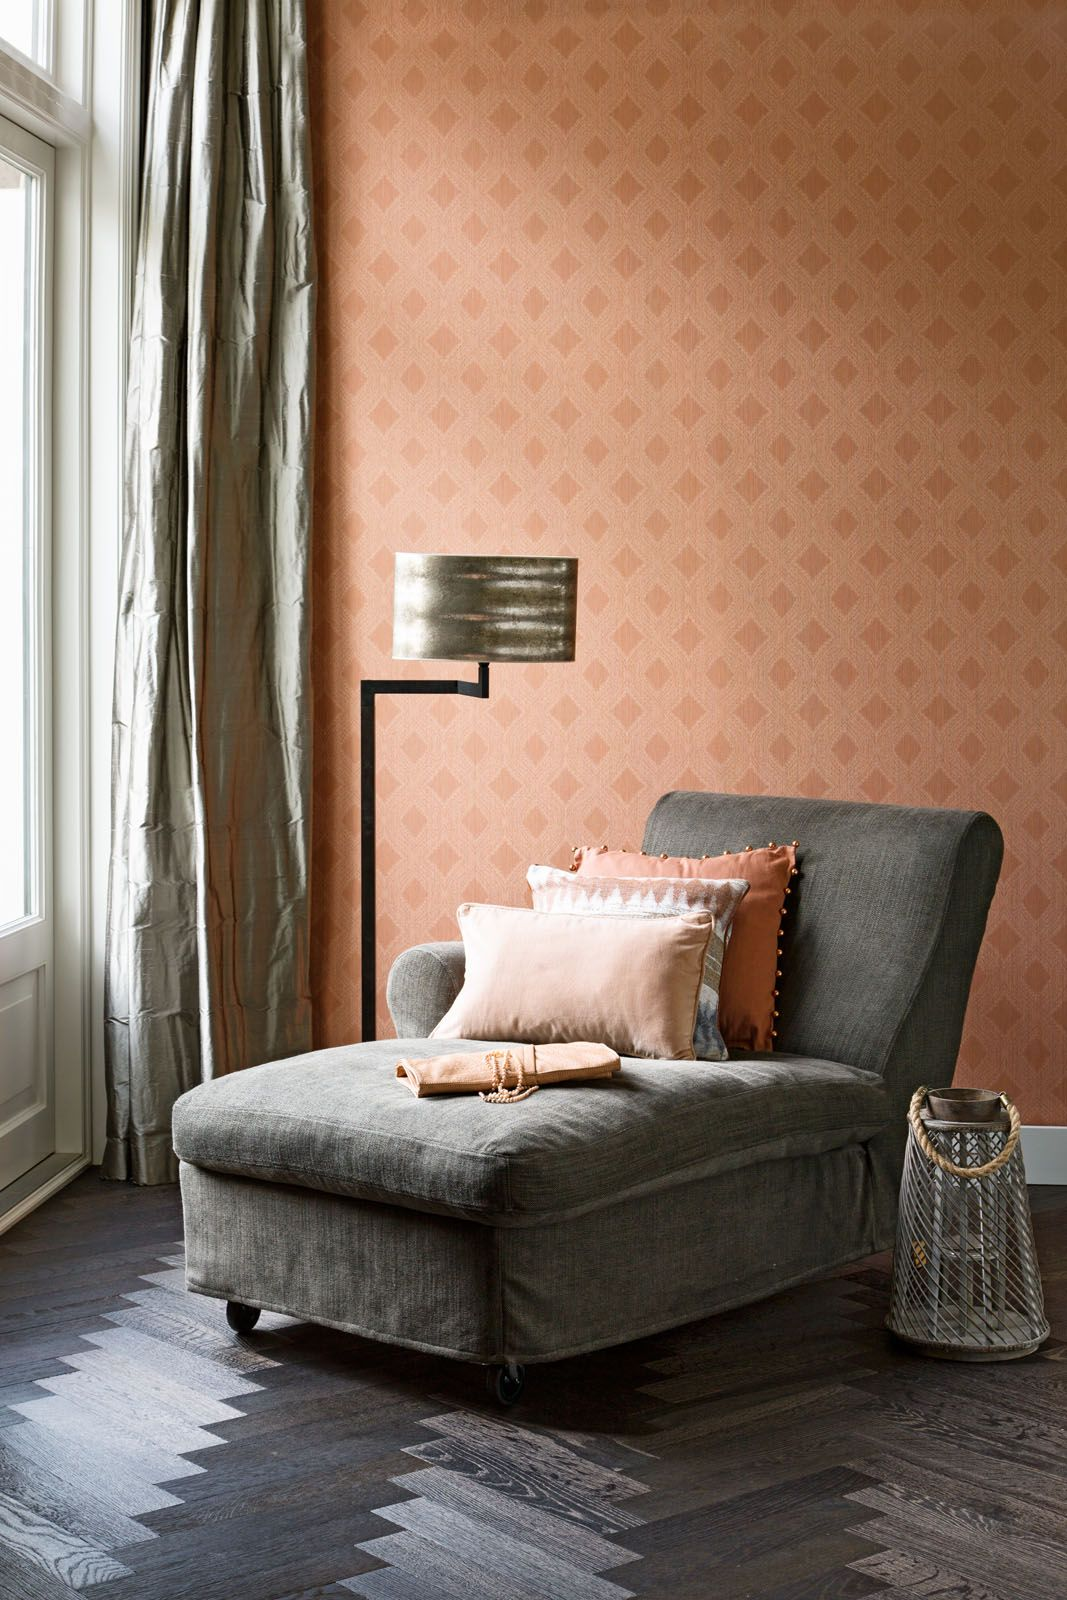 Boutiques, Wallpapers and Orange on Pinterest